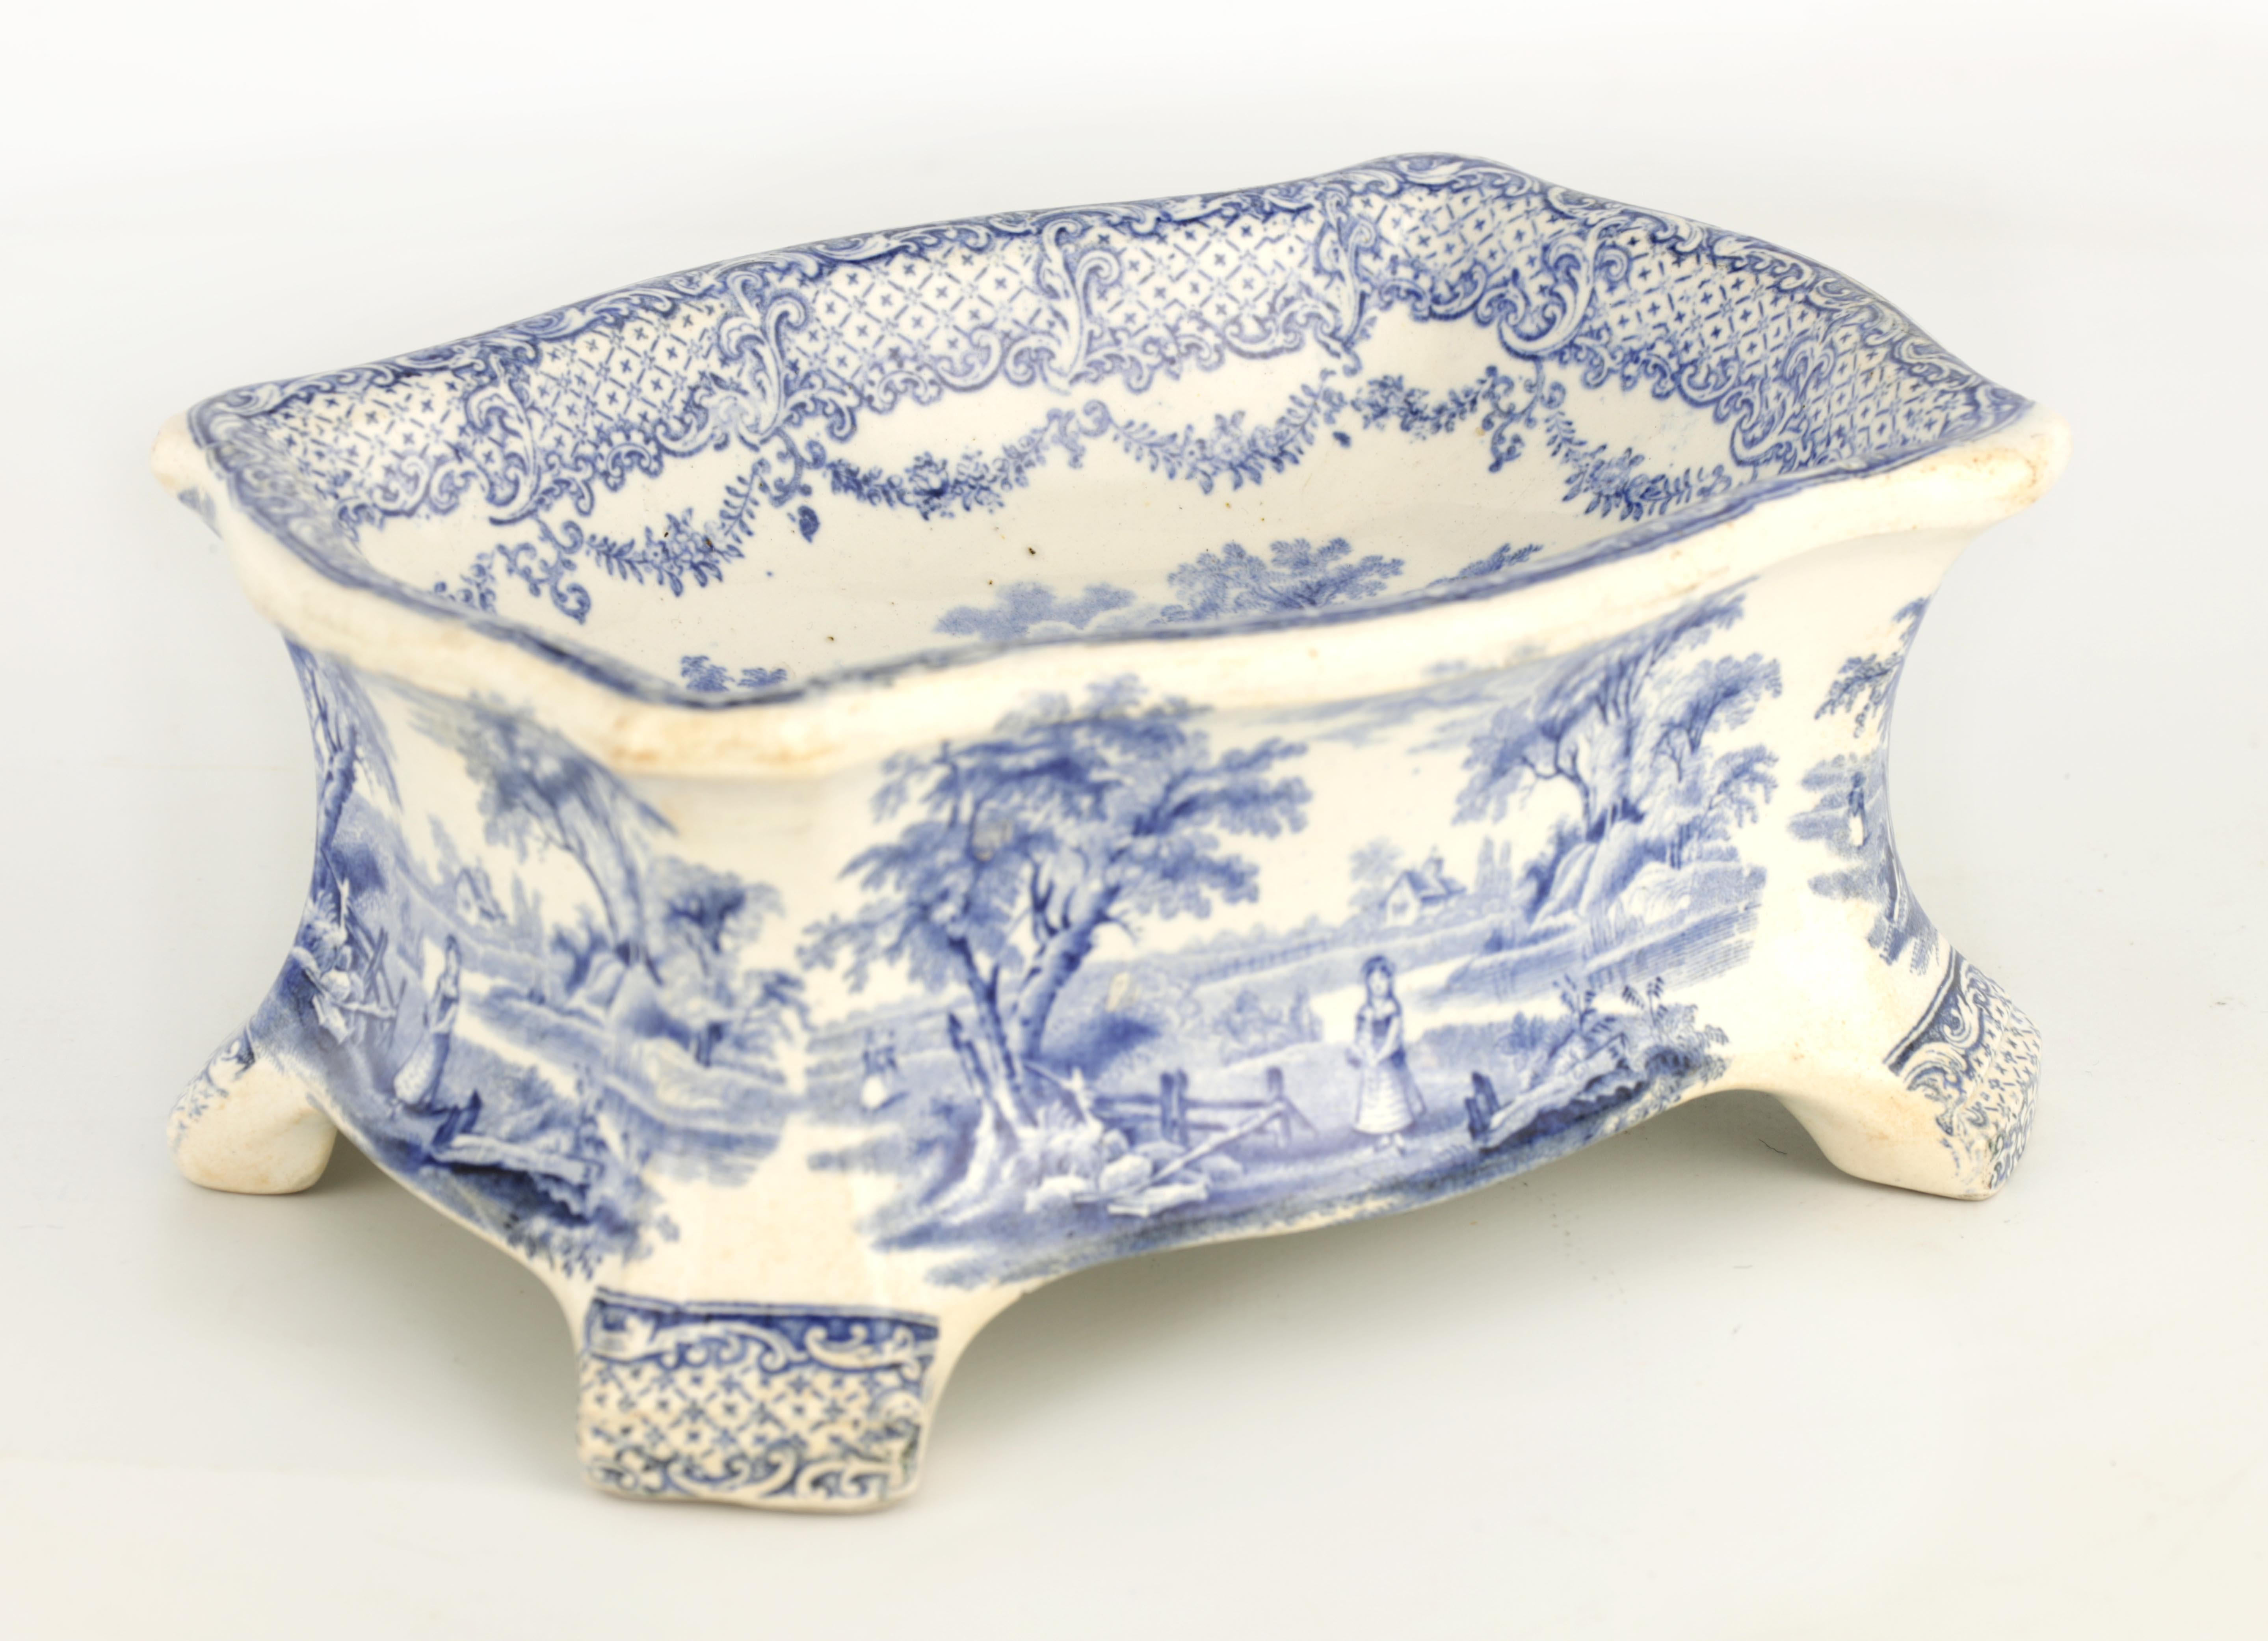 A RARE 19TH CENTURY RIDGWAY BLUE AND WHITE POTTERY DOG BOWL decorated with landscape scenes